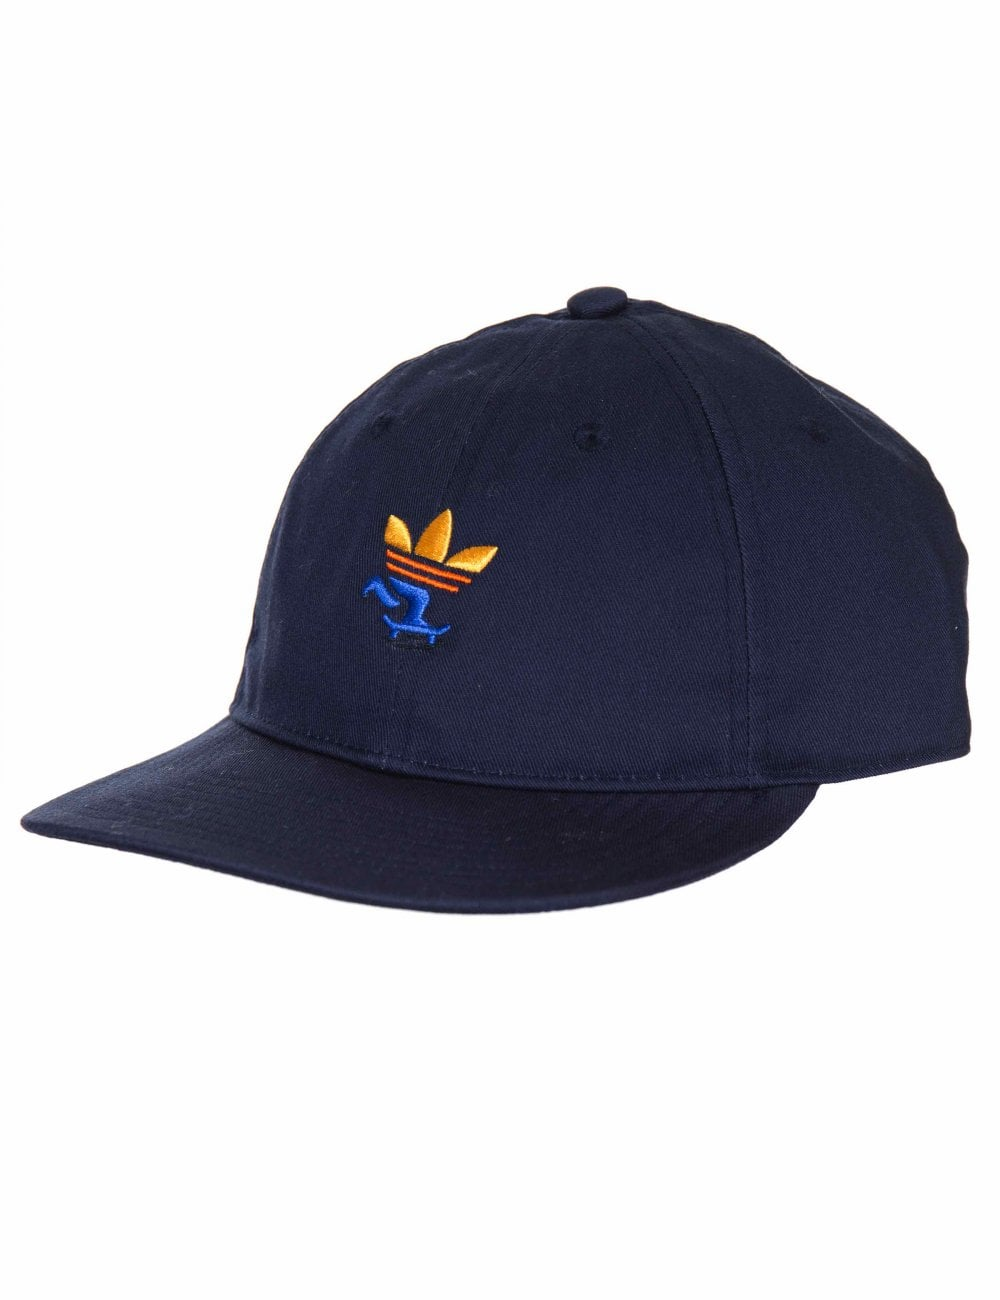 Adidas Skateboarding Push Snapback Hat - Collegiate Navy ... 8544a6638a2